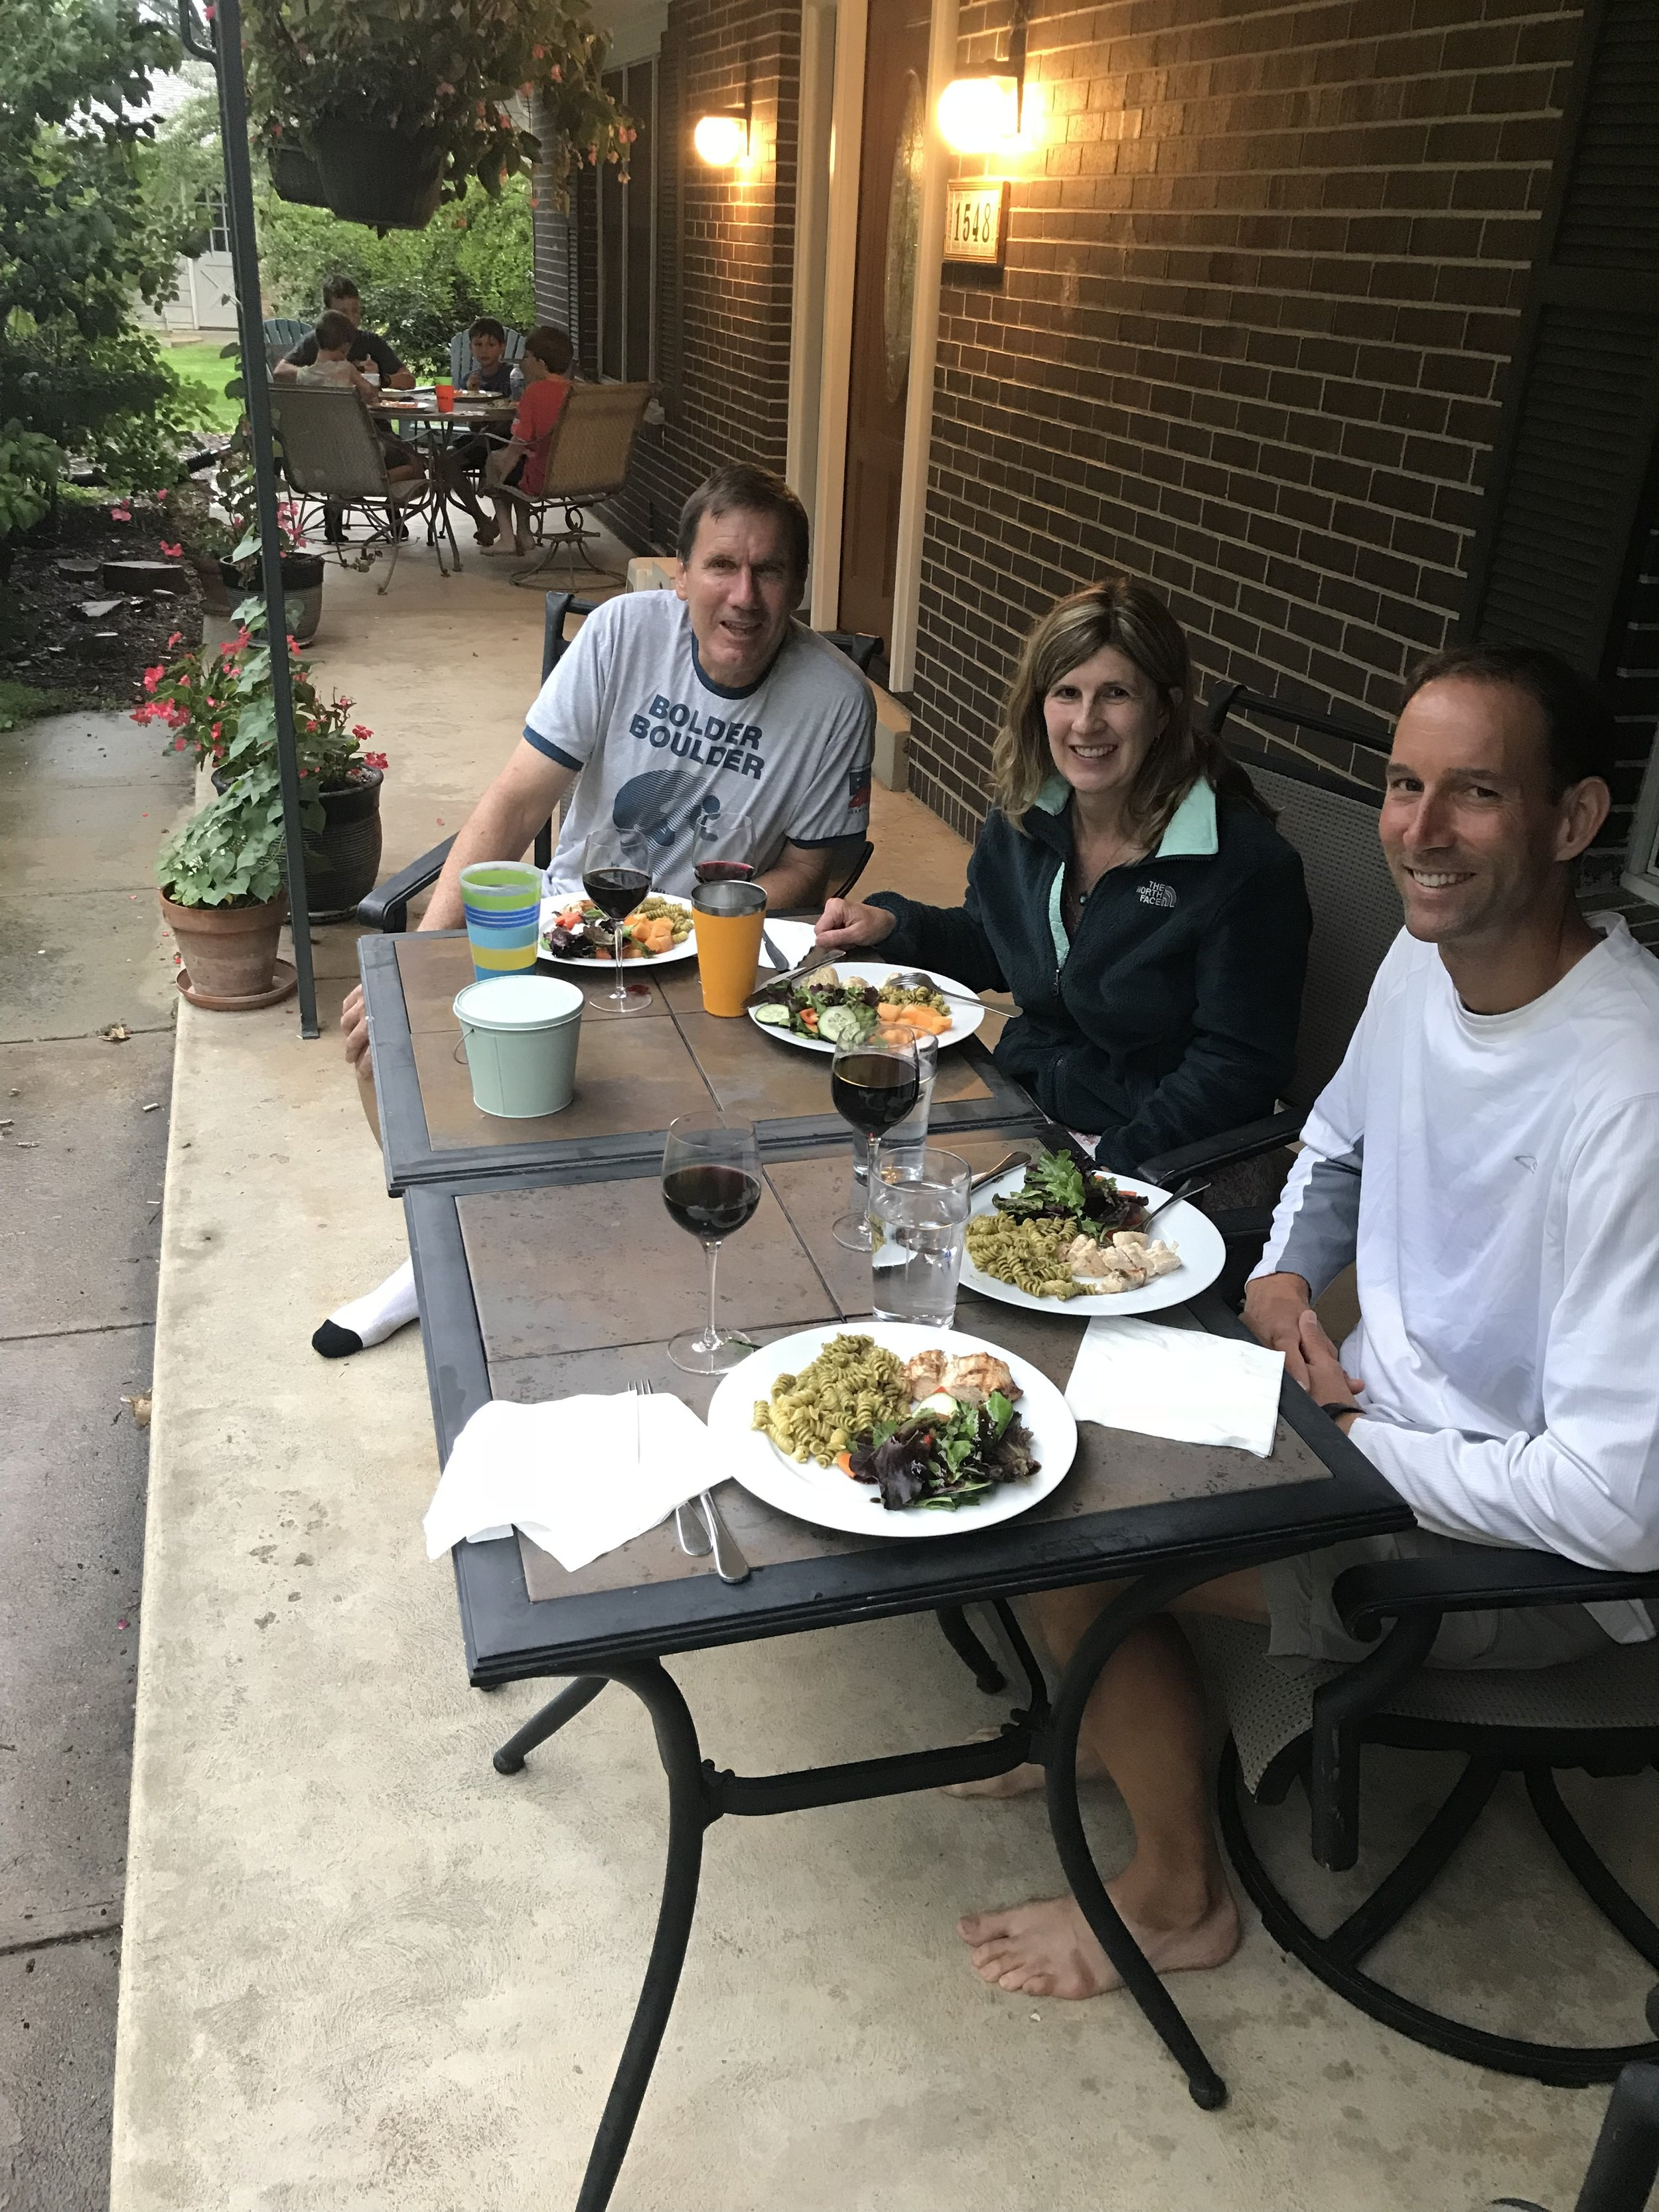 What a pleasant evening eating dinner together on Craig and Susan's front porch! We were excited that Craig had made his family's recipe of pesto, which we've been using for years at home and that we had been craving on the bike trip.